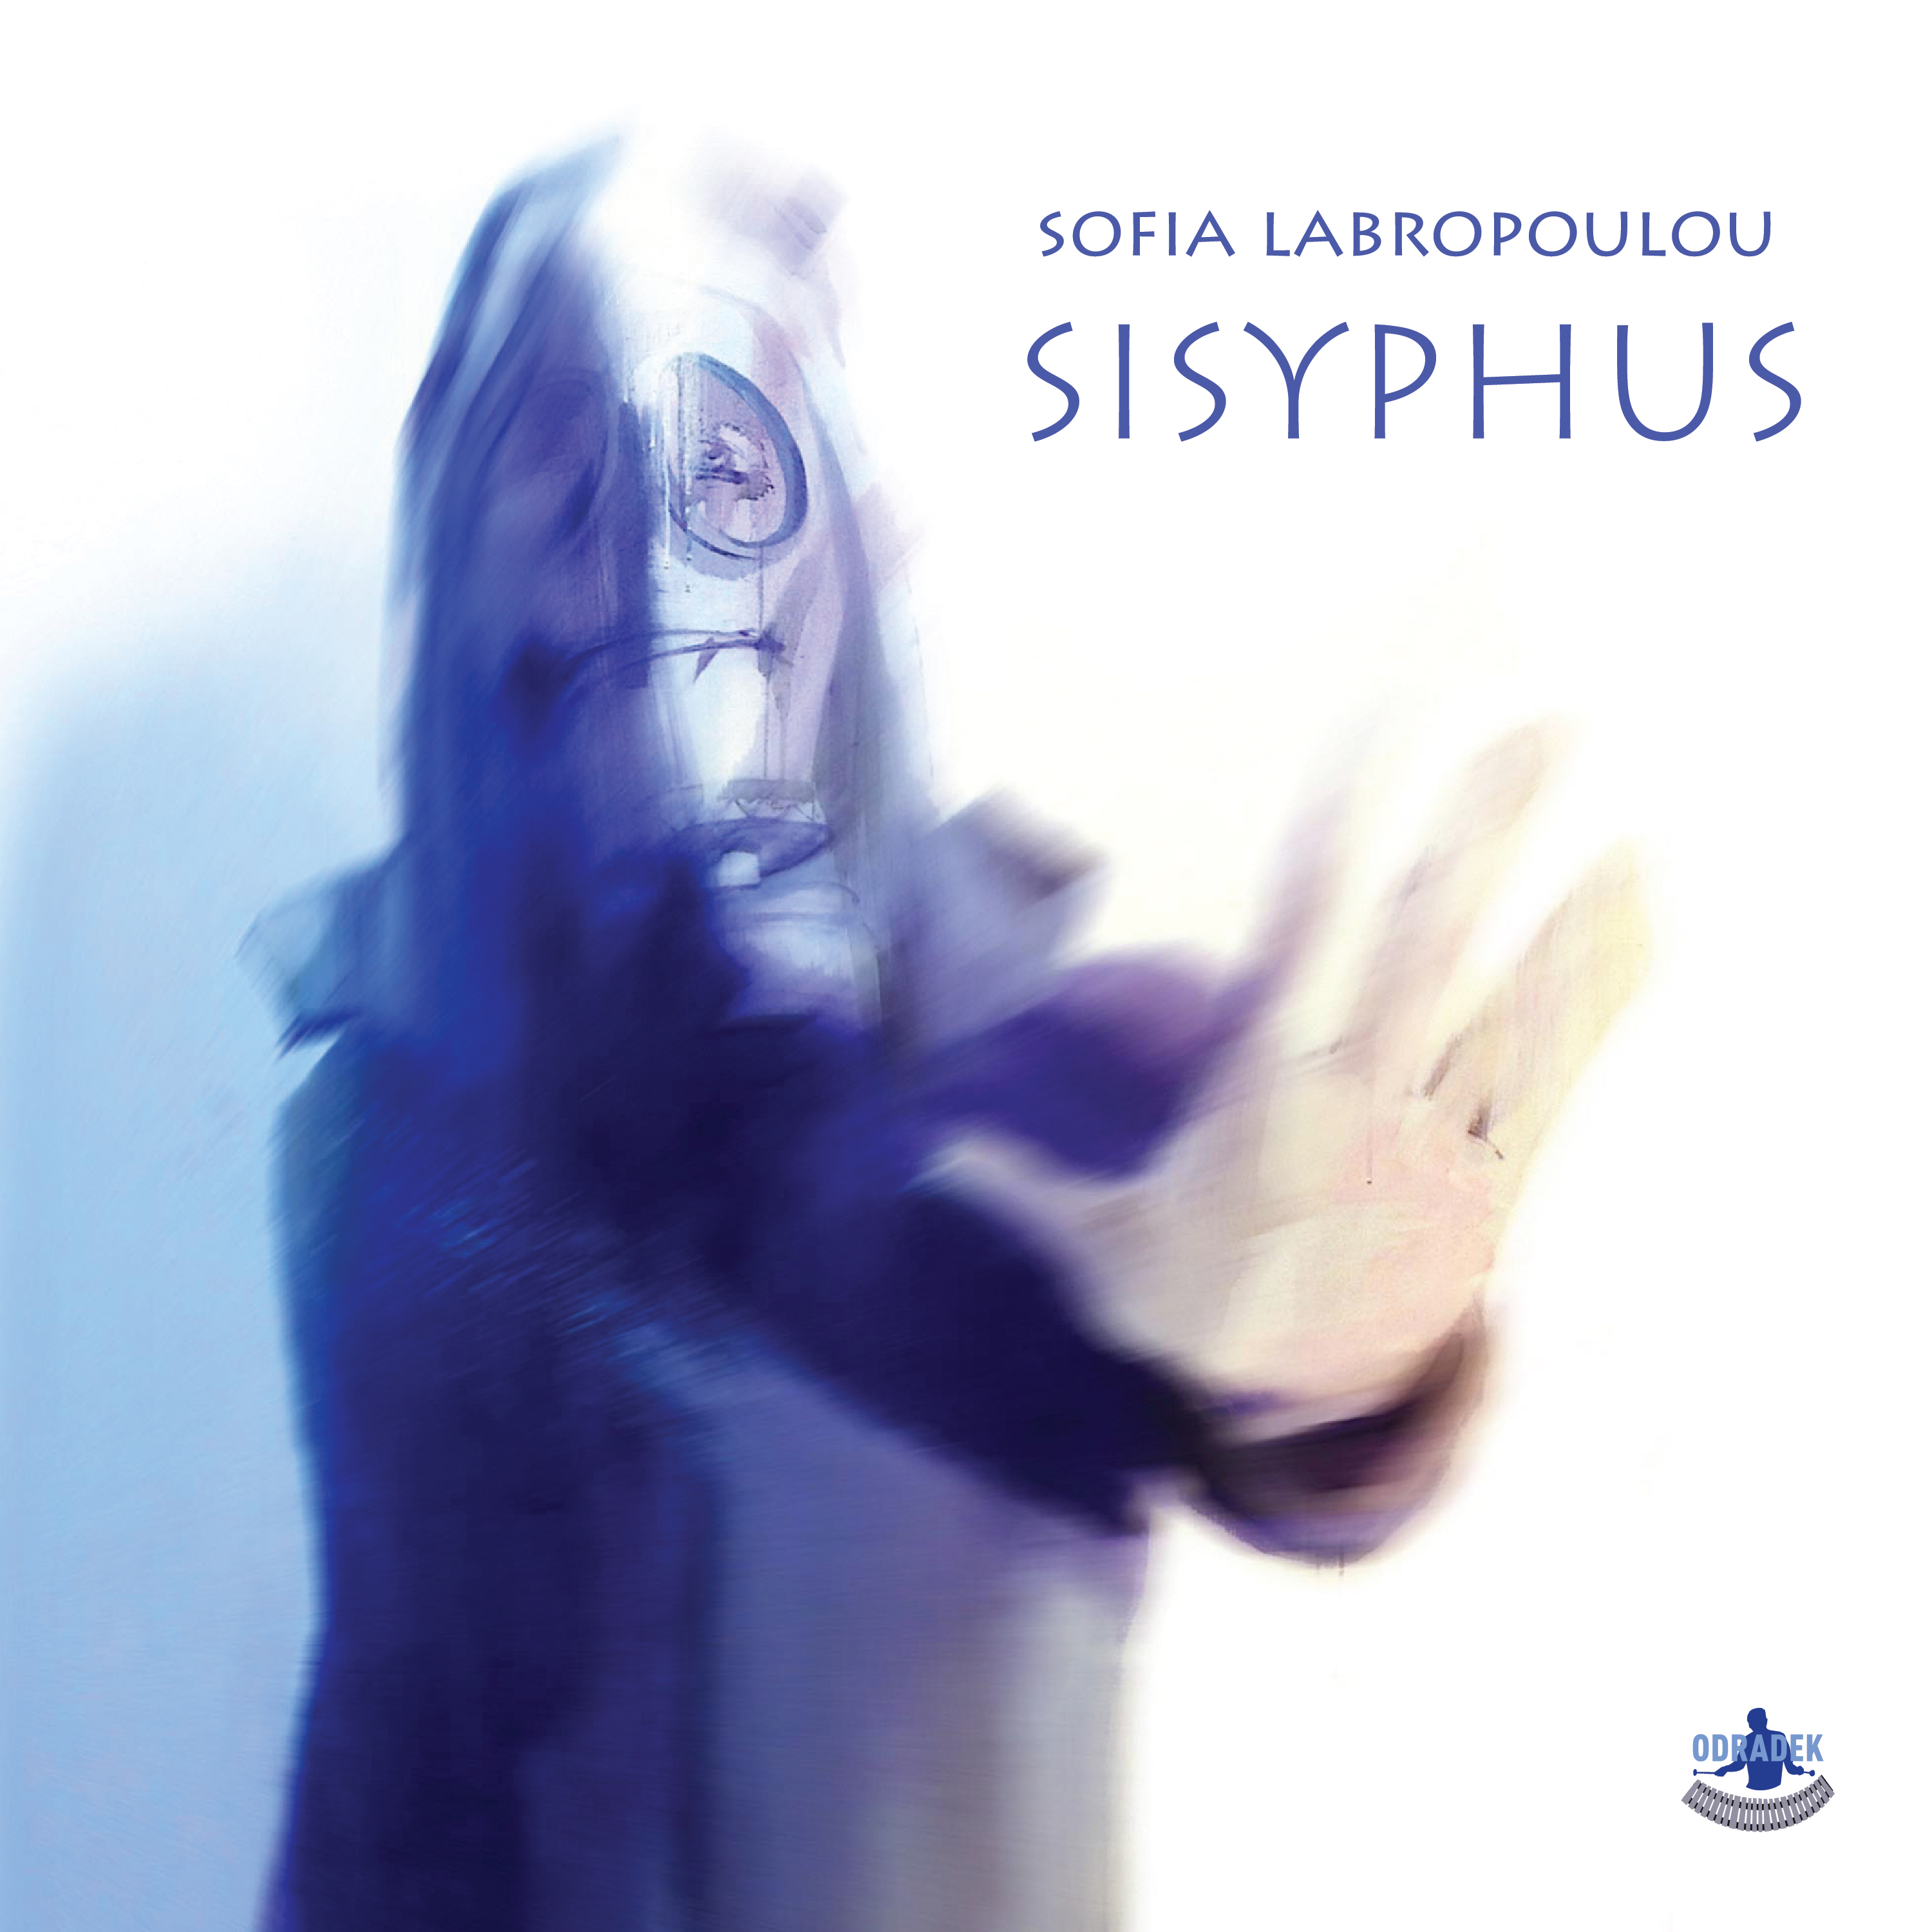 odrcd708_sofia_labropoulou_sisyphus_cover_front.jpg